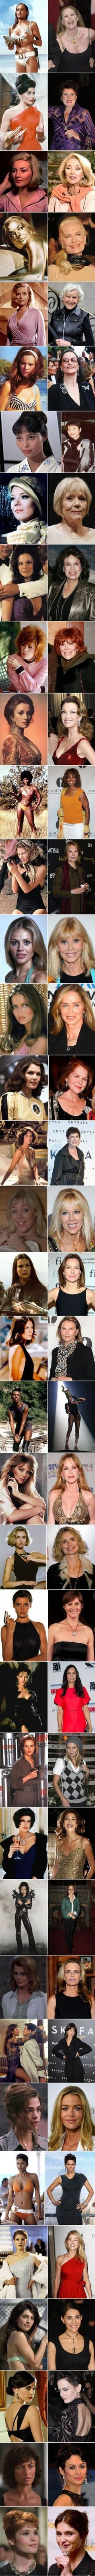 Bond Girls - Then and Now. S)